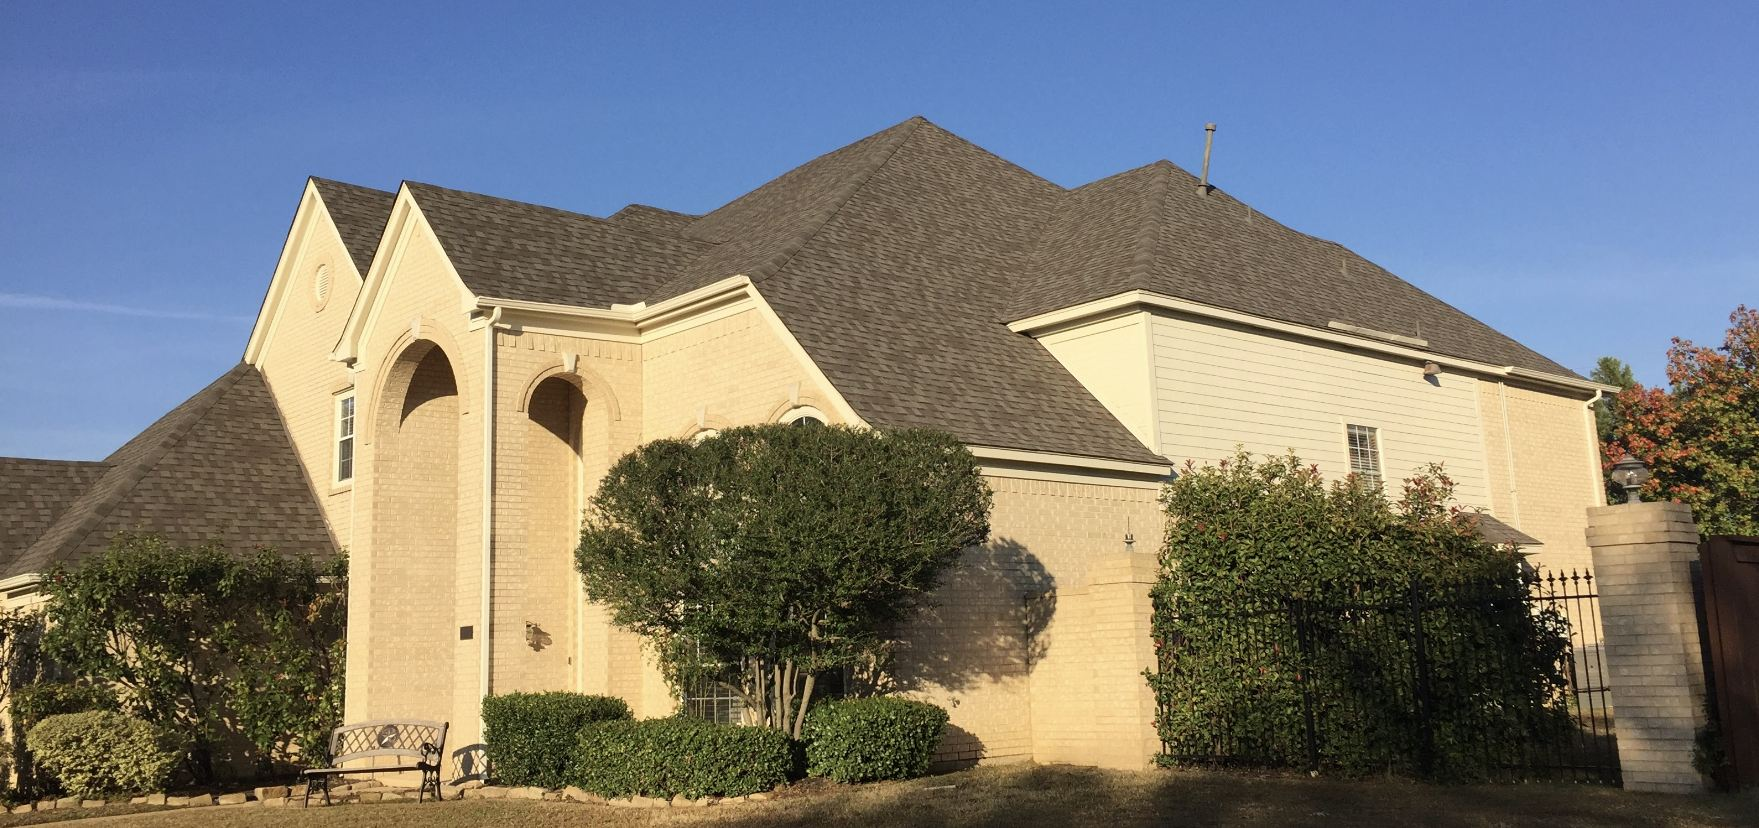 Top Rated Roofing